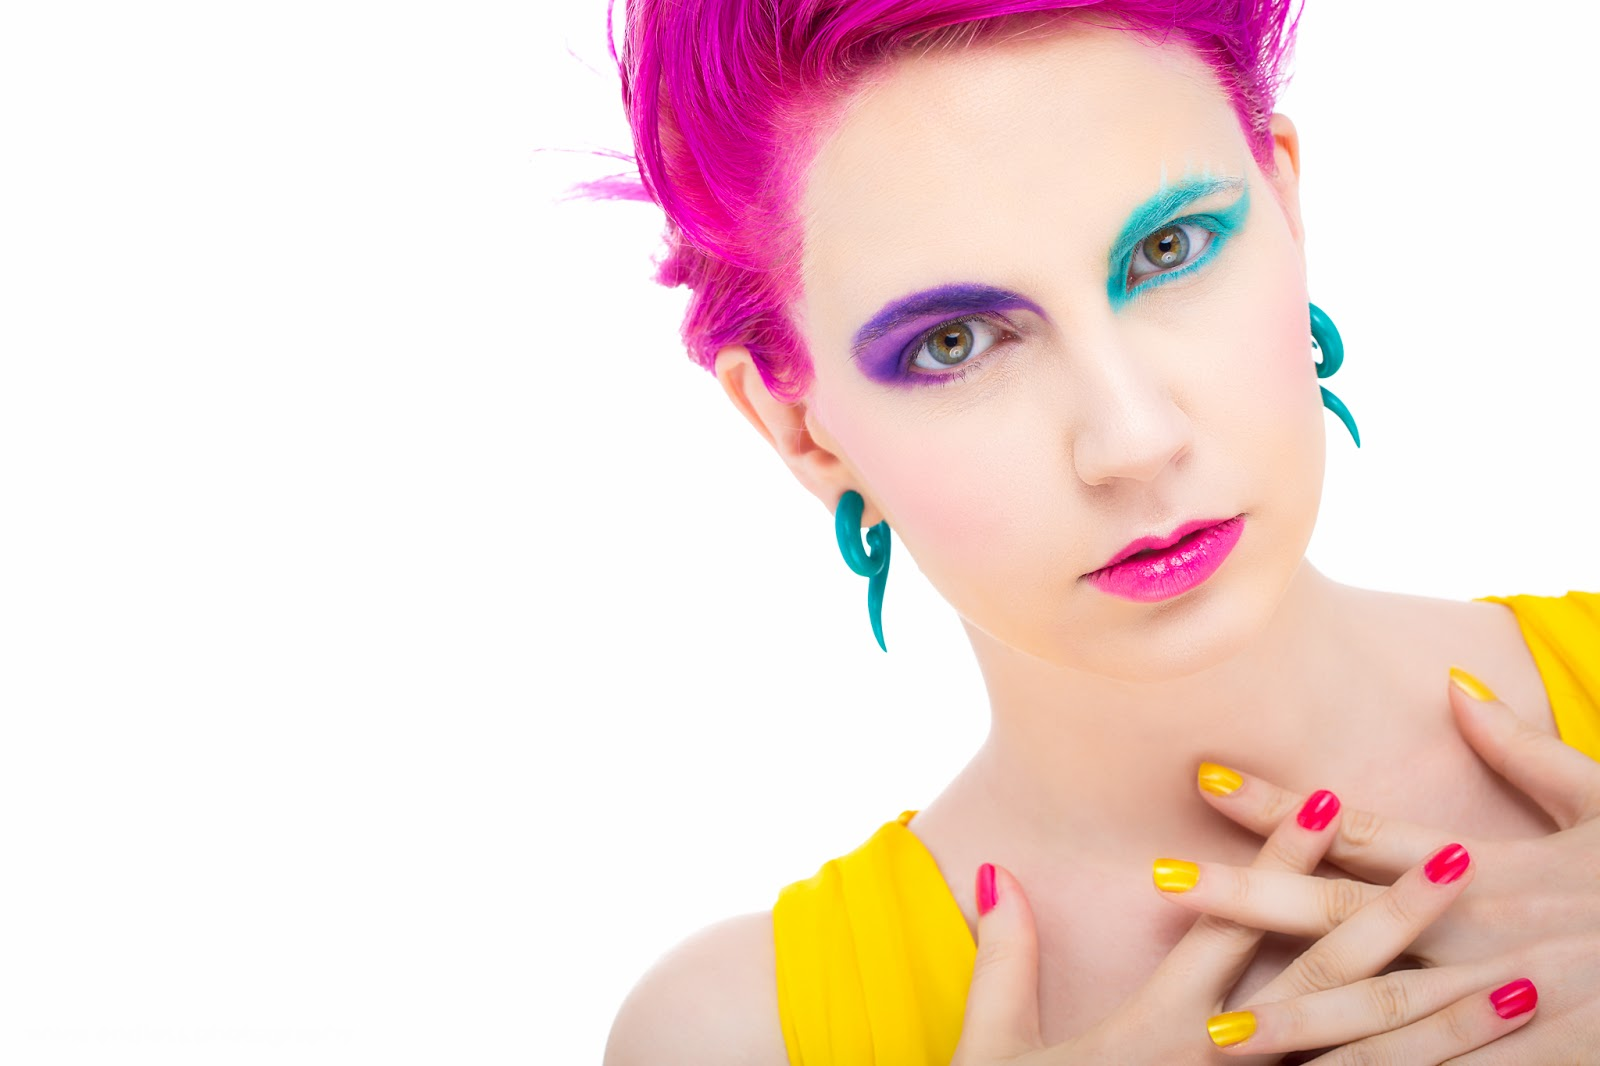 Logan Utah Photographer, Fashion, Beauty, Color, Avante Garde, Concept, Pink, Yellow, Blue, Makeup